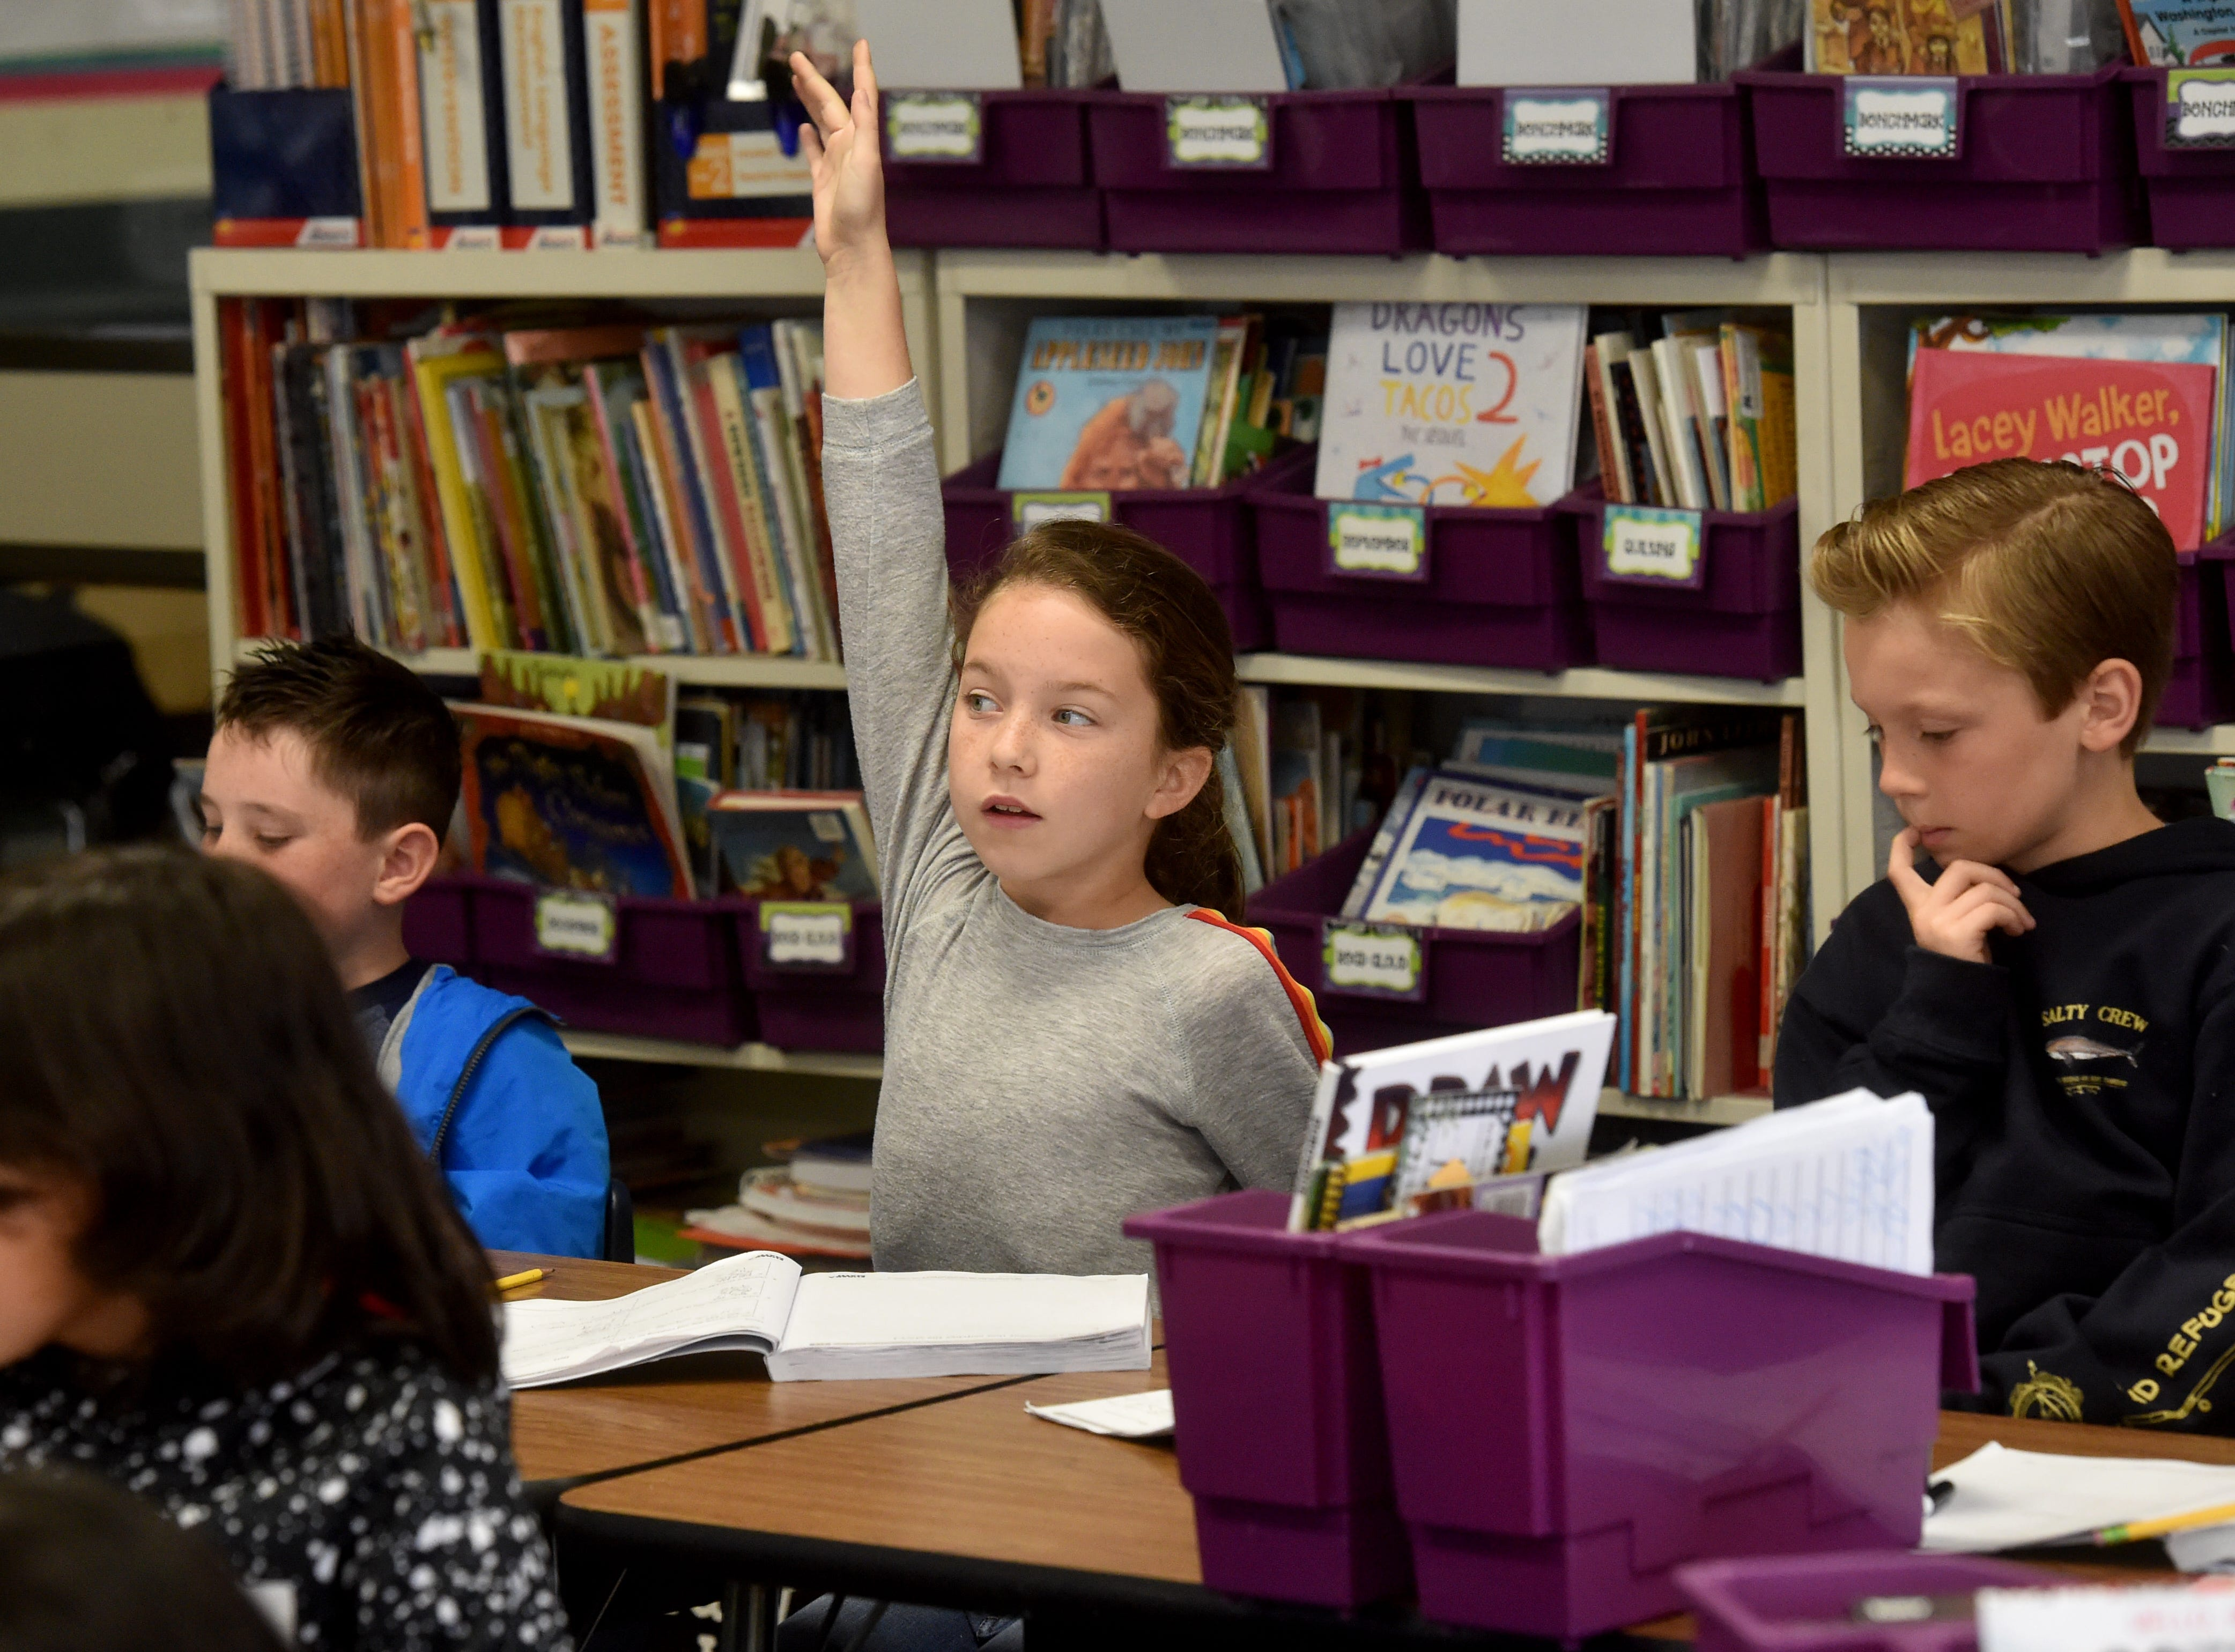 Sienna Goden, a second-grader at Mariposa School in Camarillo, volunteers to answer a math question using a new touch-screen display during class on a recent Monday. The Pleasant Valley School District is using funds from Measure C to purchase technology for the classrooms.